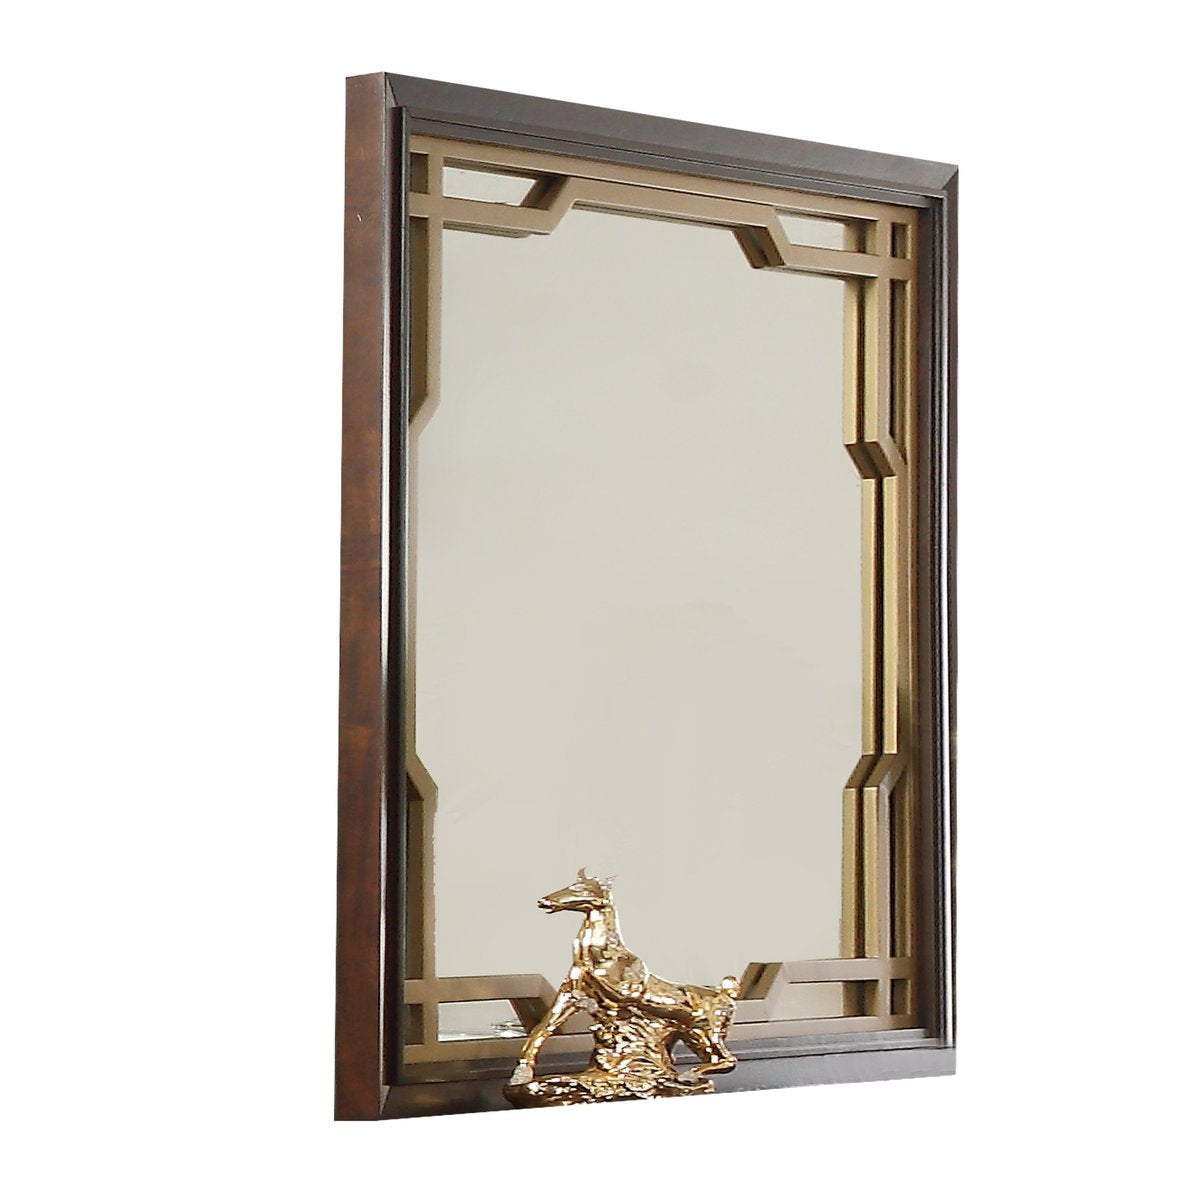 Mirror: Rectangular Wooden Mirror With Metal Cutout Pattern